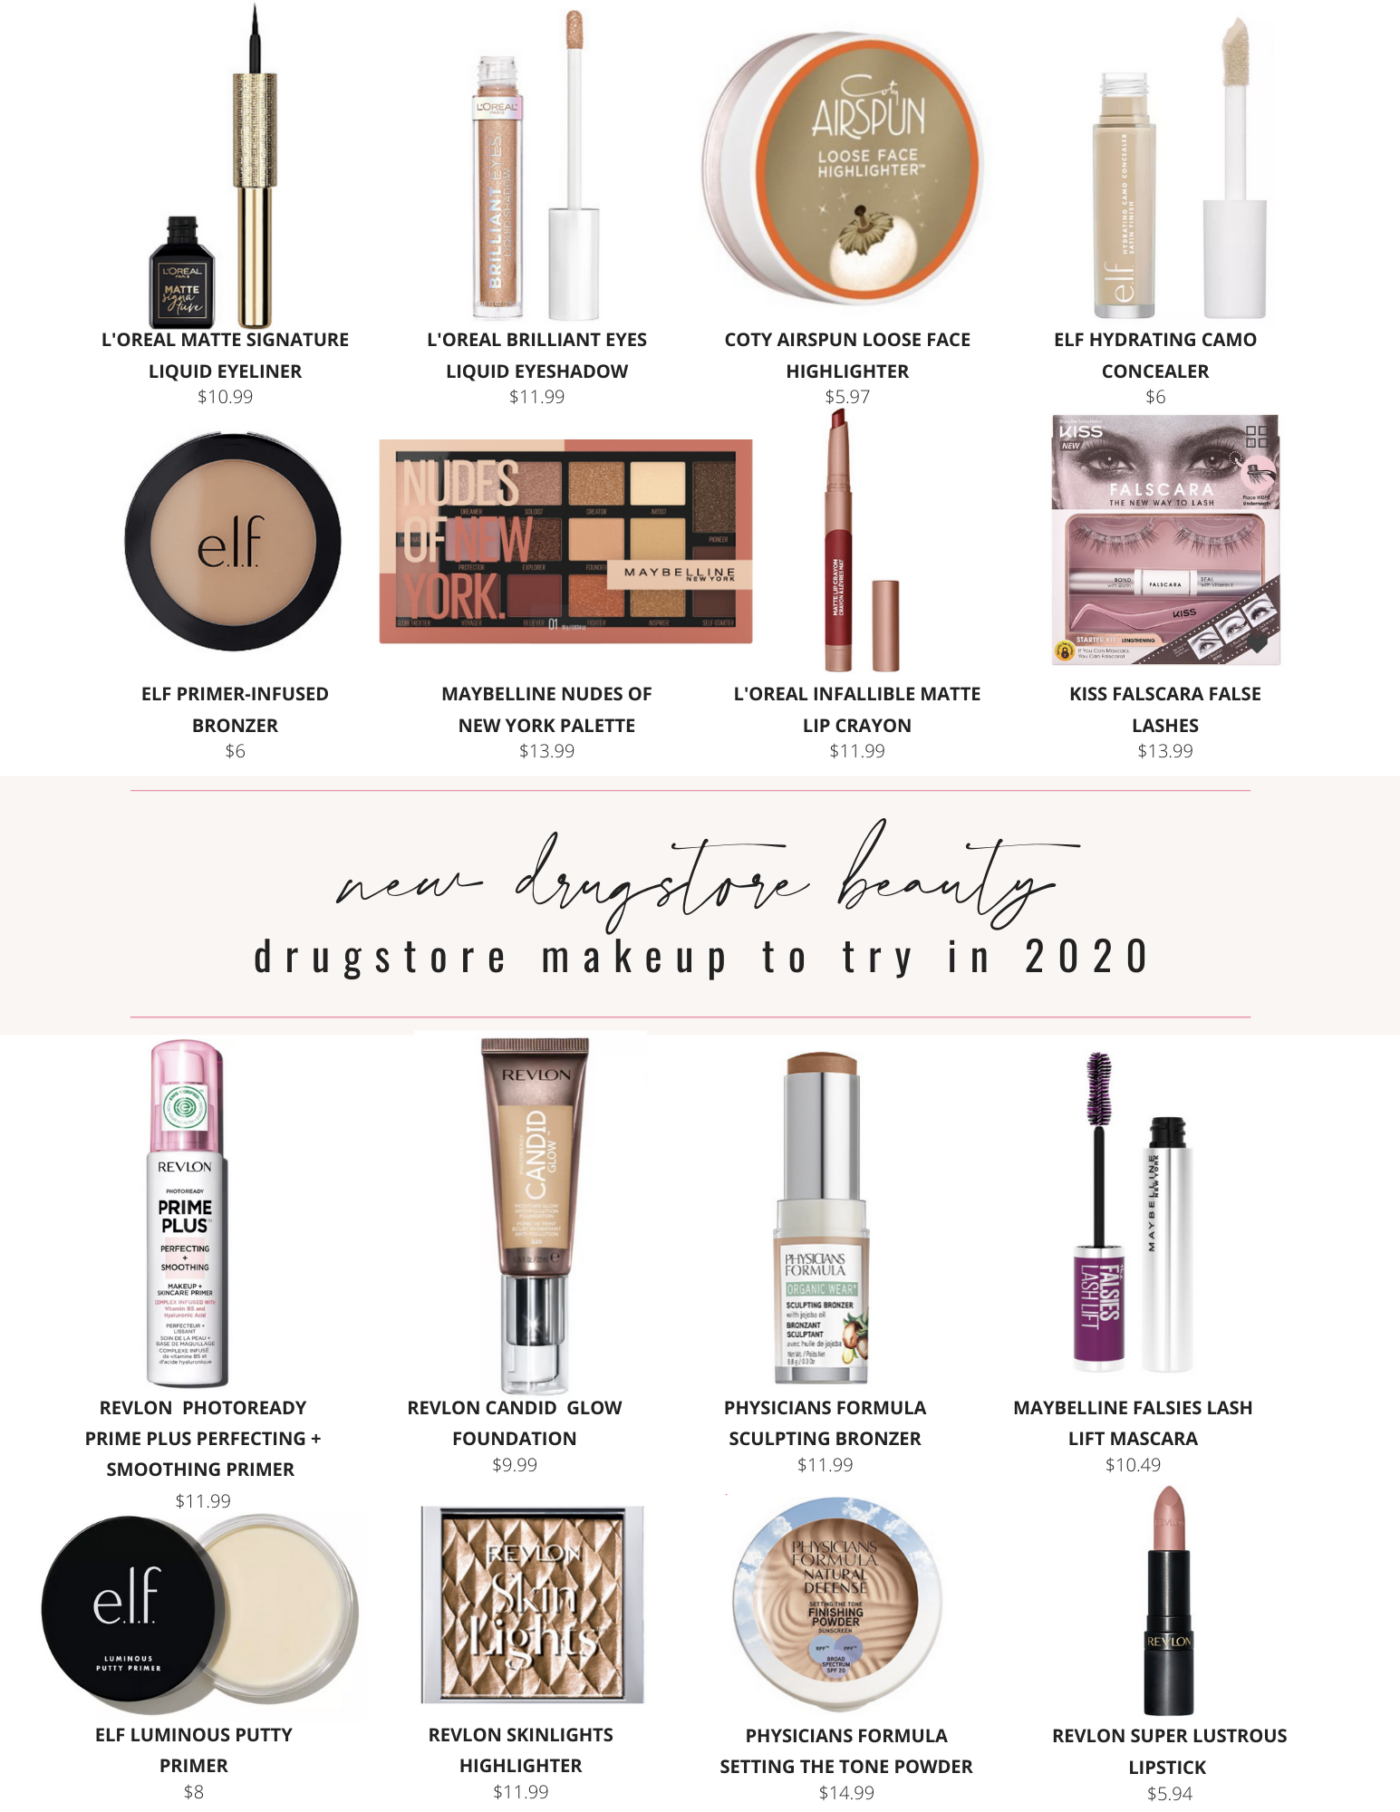 New-Drugstore-Beauty-Best-Drugstore-Makeup-to-Try-in-2020